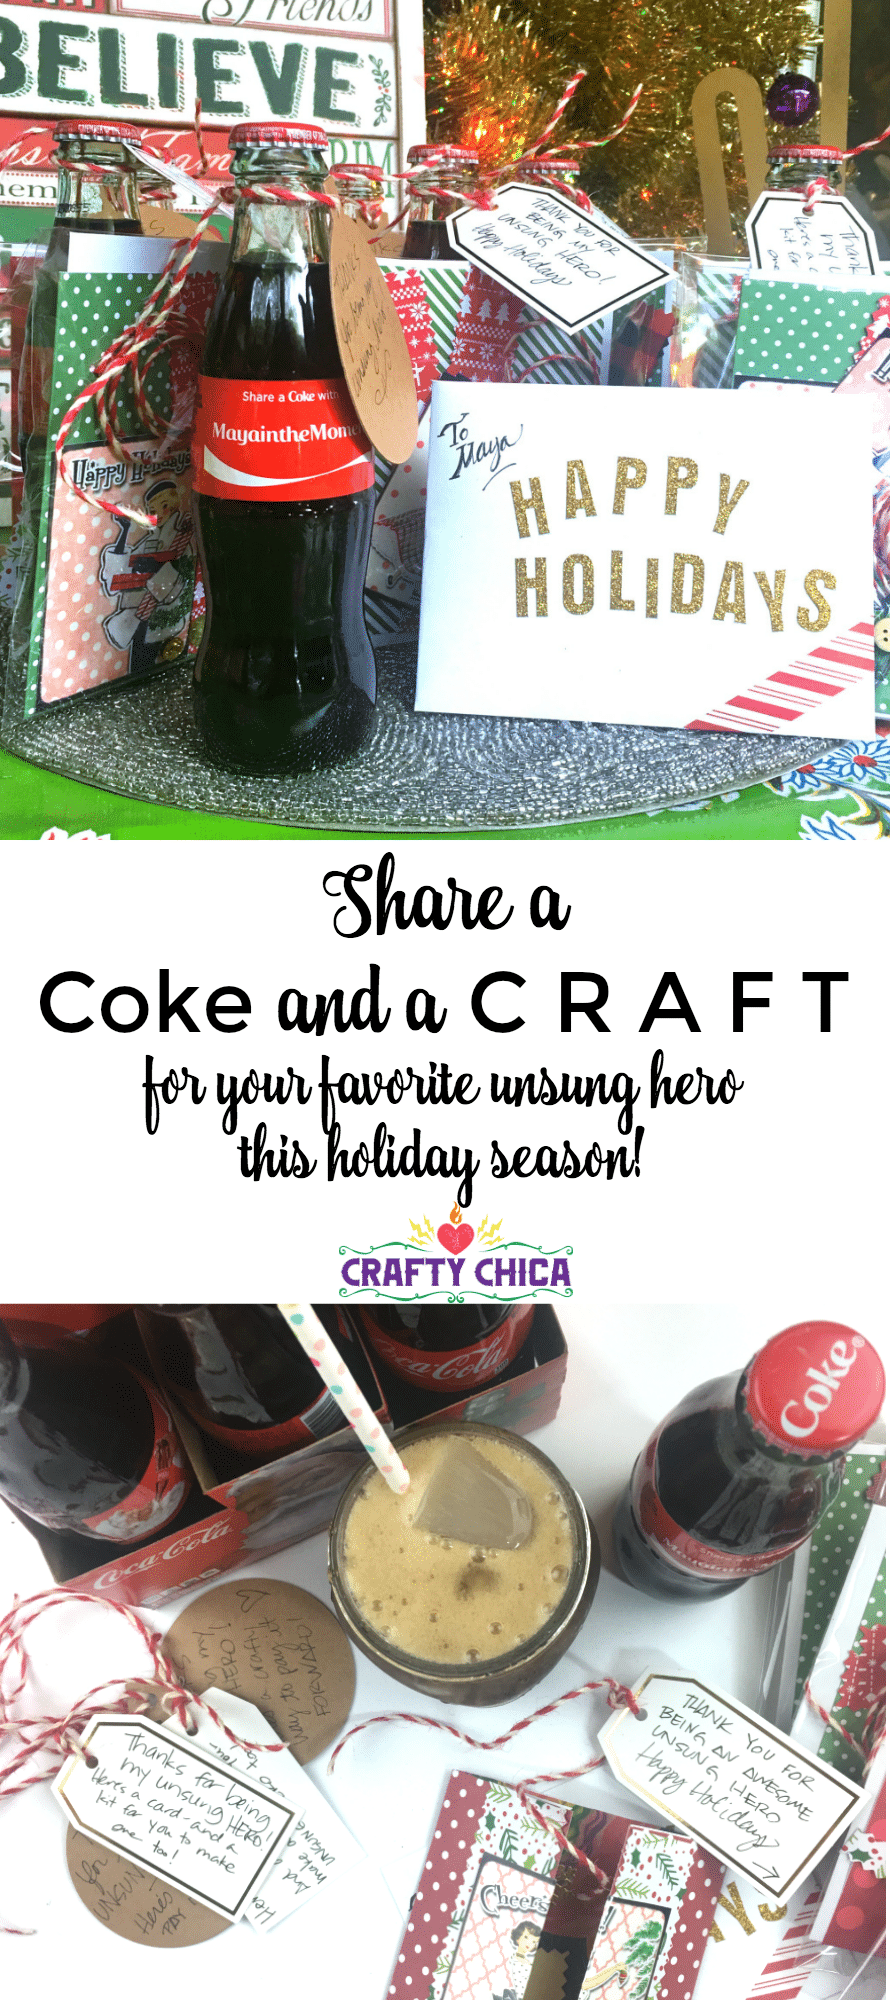 Share a Coke and a craft this season, By CraftyChica.com